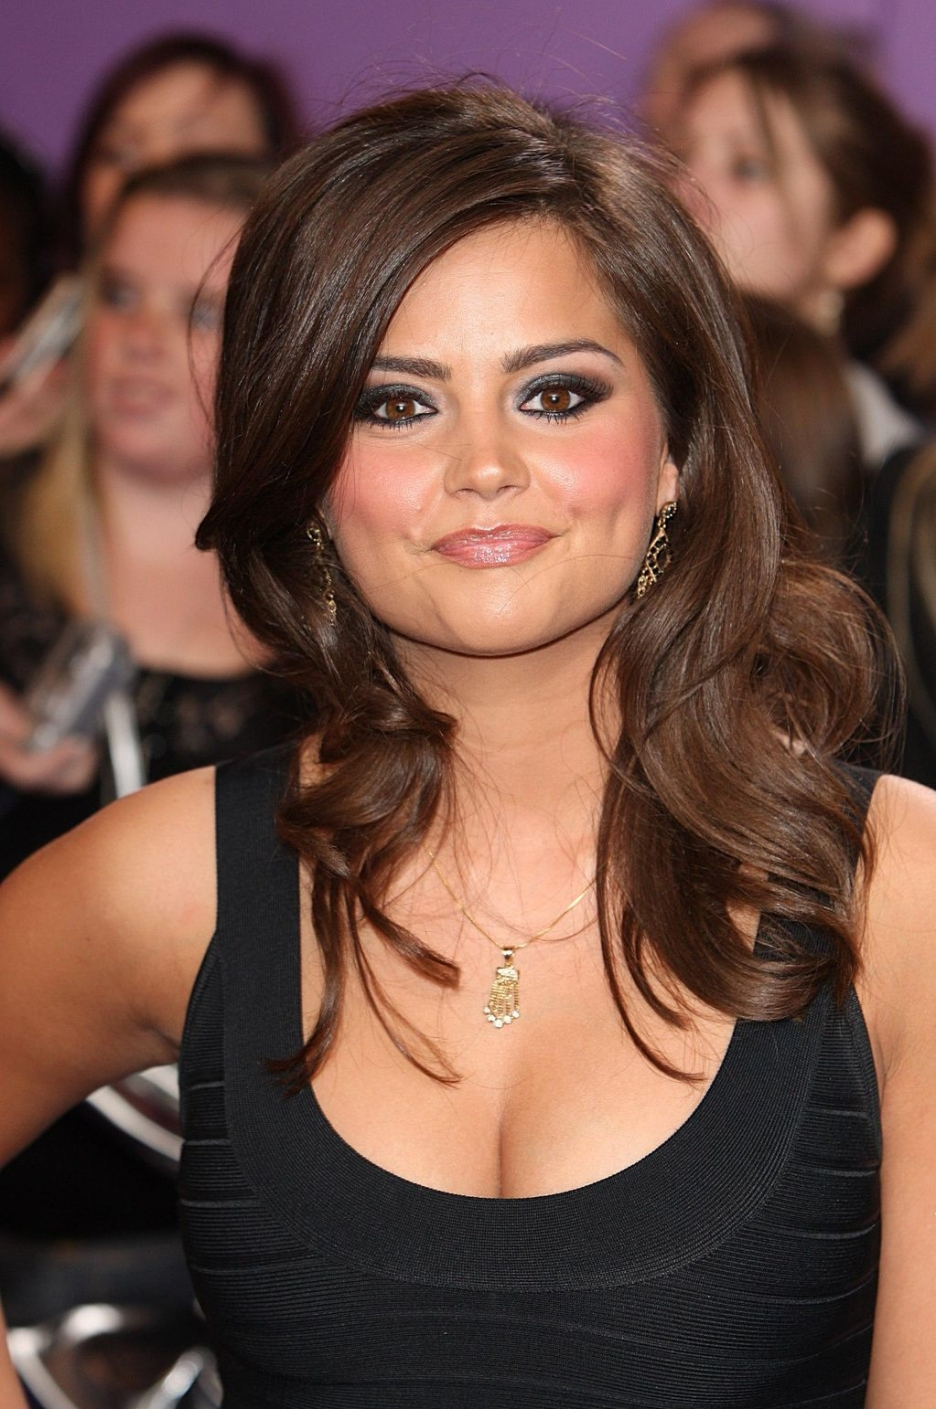 ICloud Jenna-Louise Coleman nudes (98 photos), Ass, Hot, Instagram, cleavage 2015